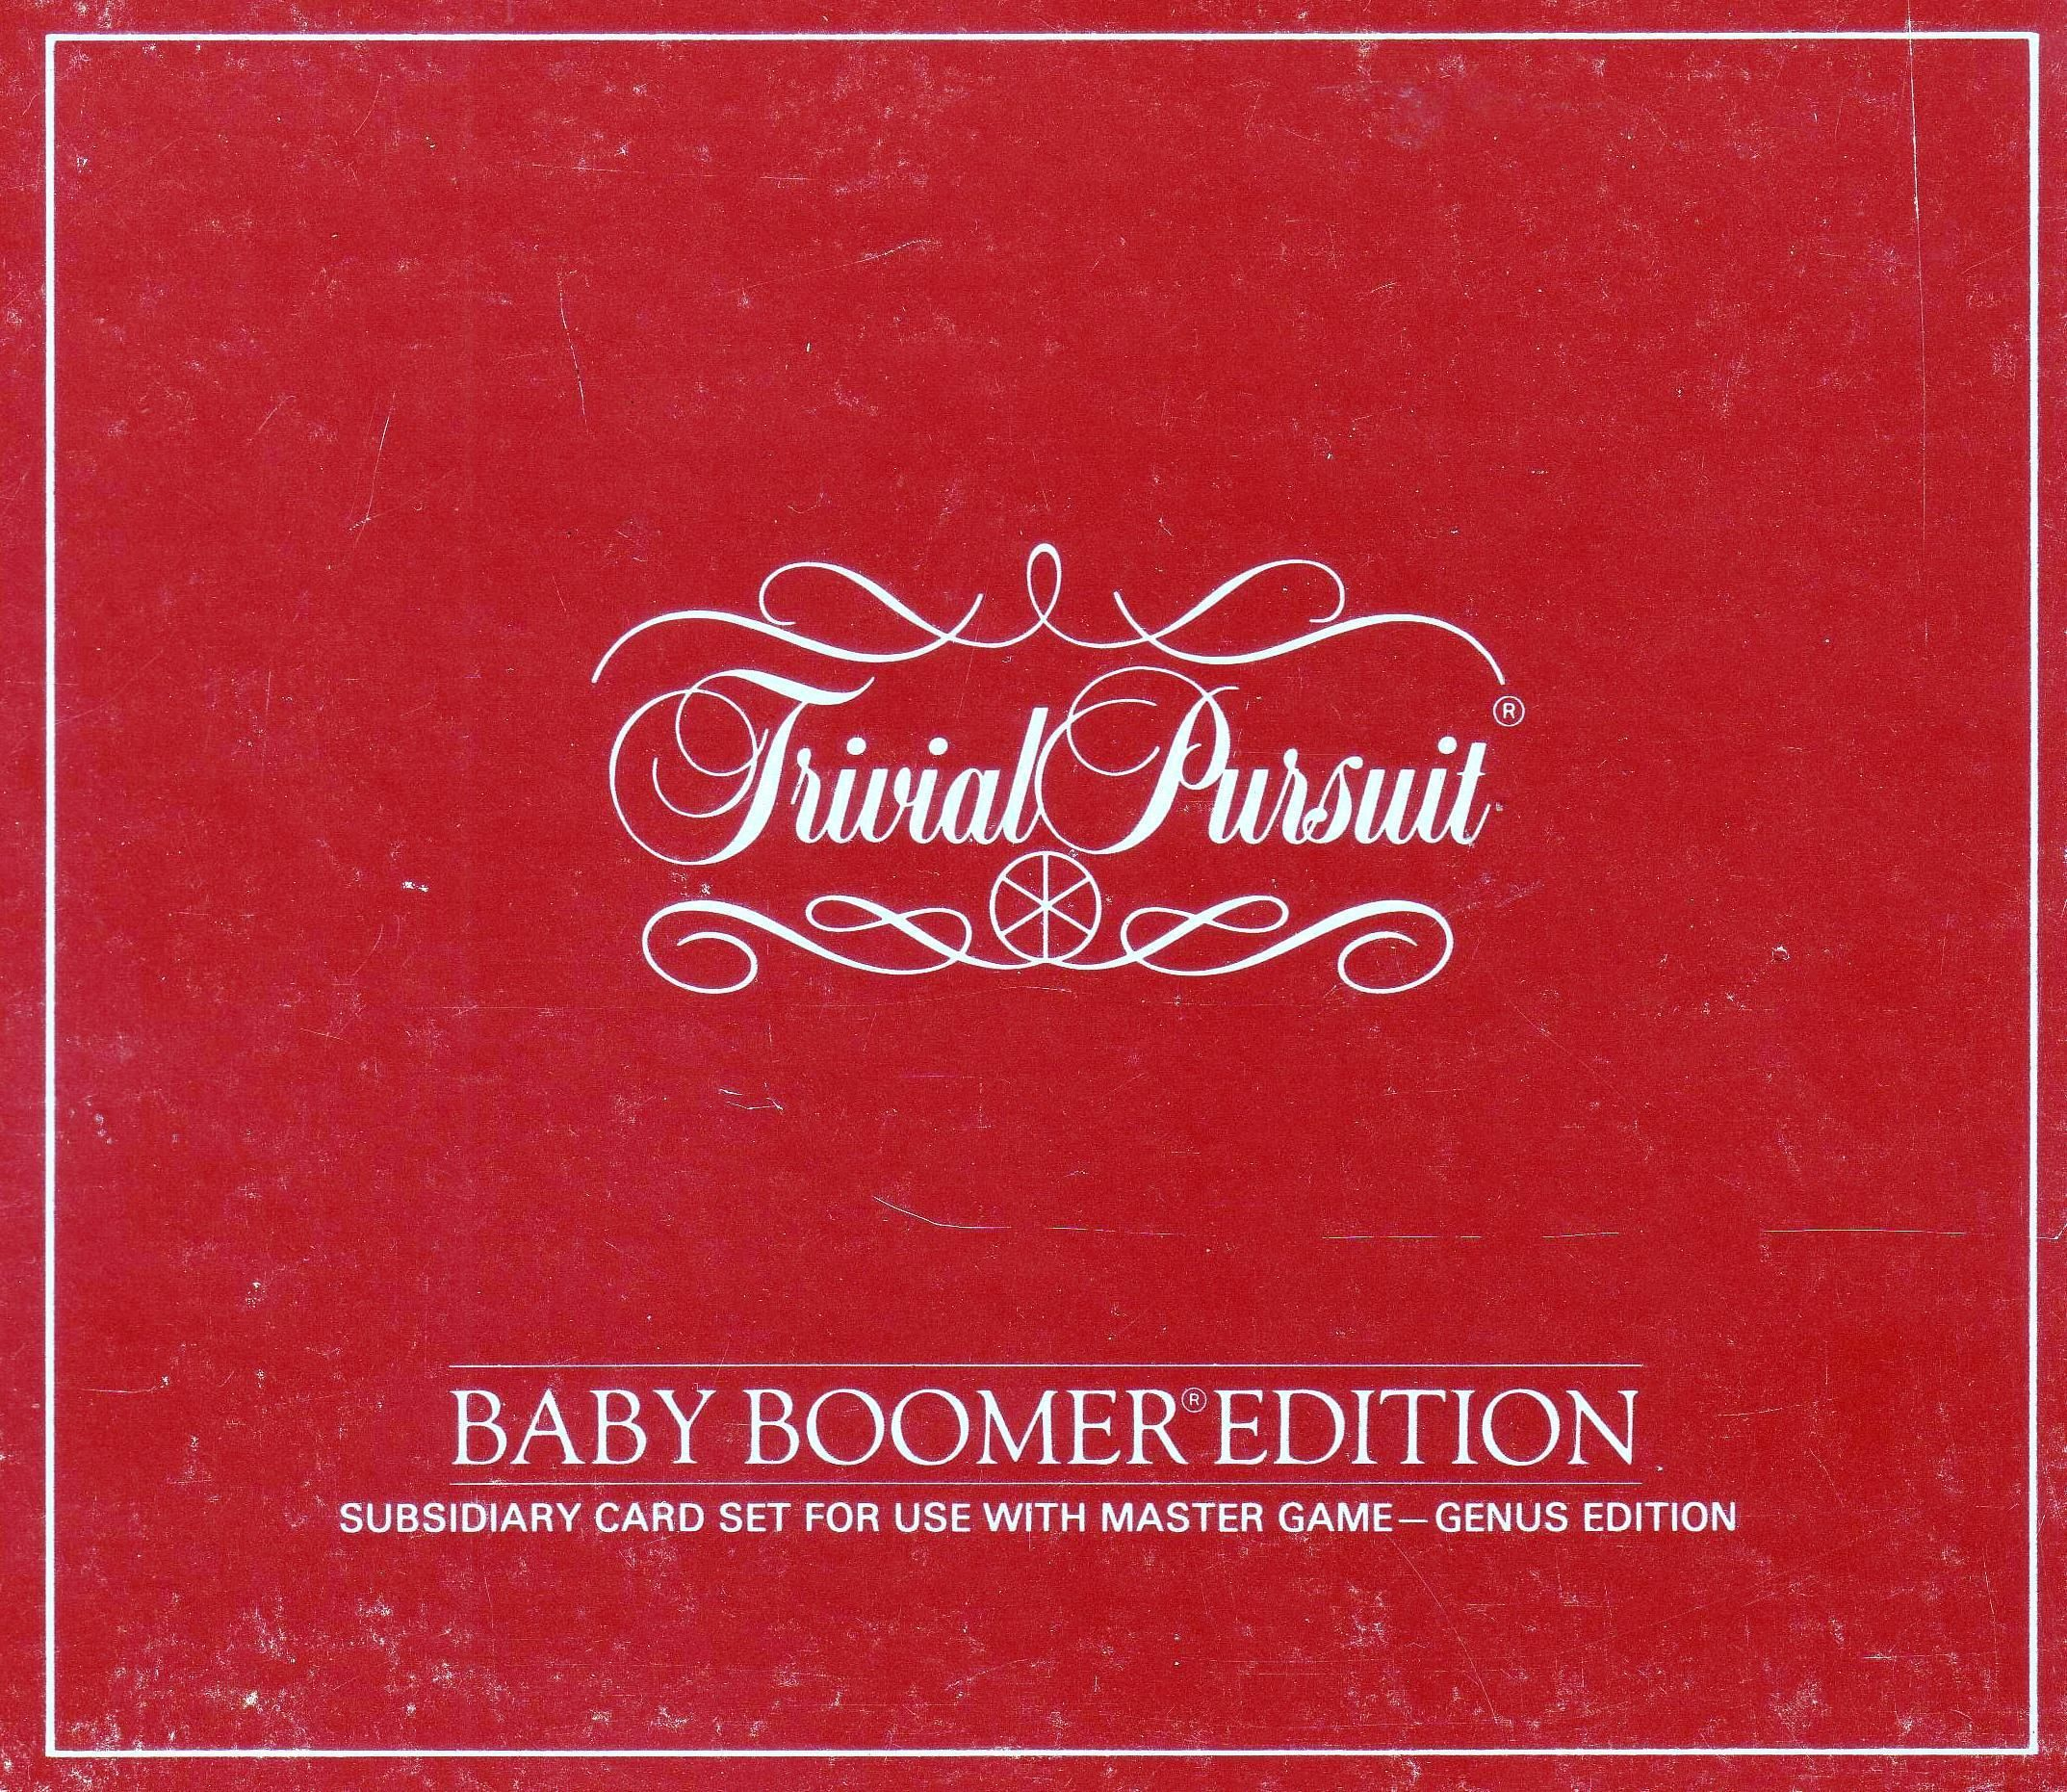 Trivial Pursuit: Baby Boomer Card Set